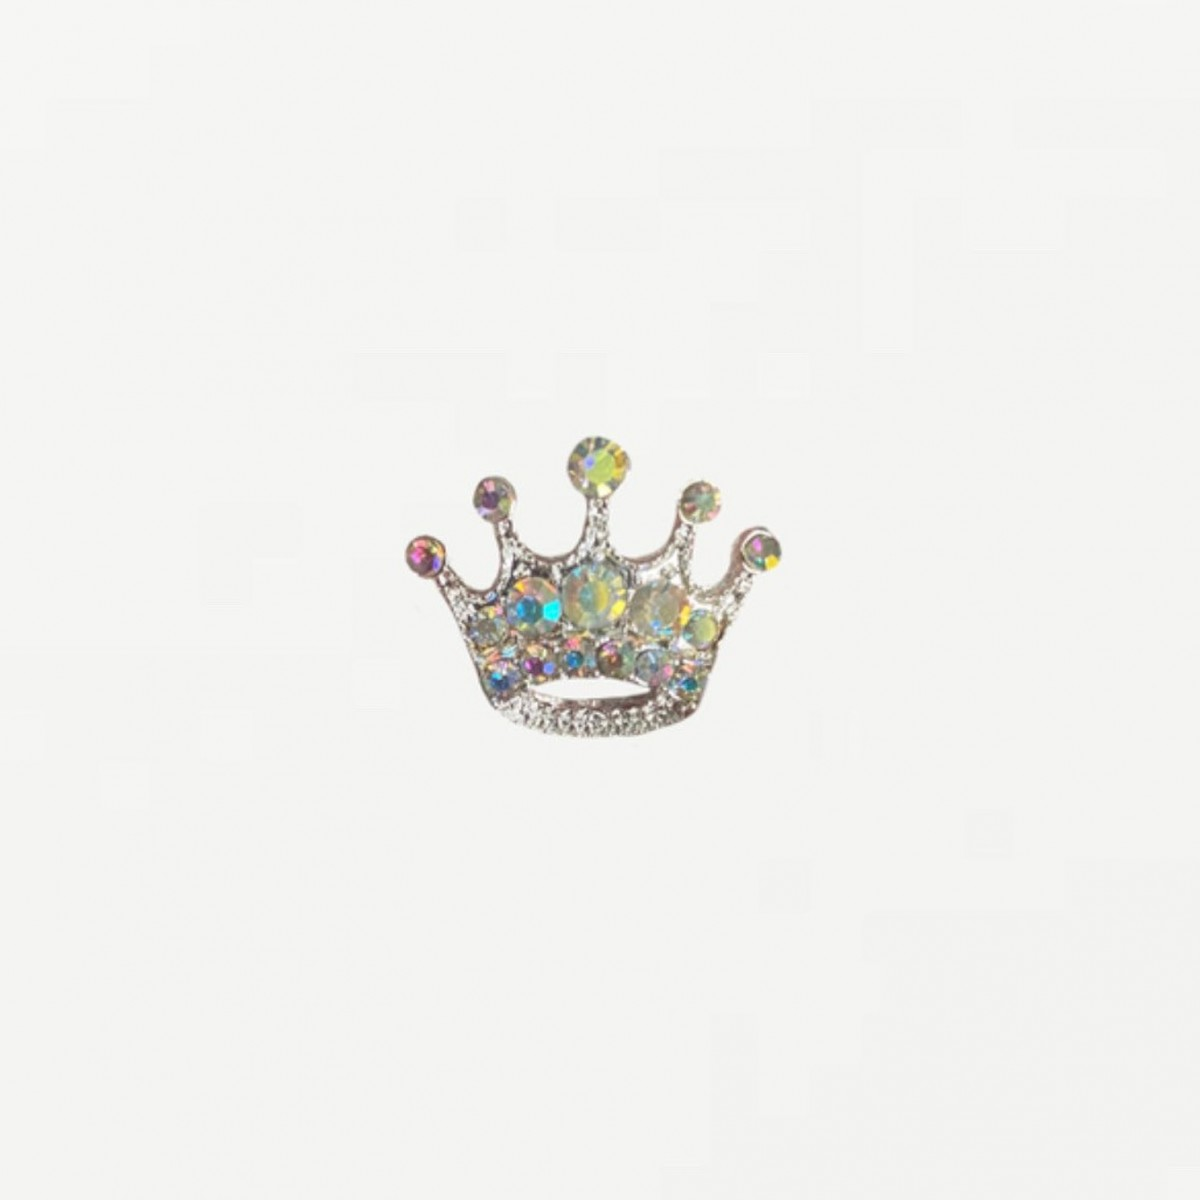 Crown Princess: Magnet for Pageant Contestant Numbers, Sashes, Name Tags, Race Bibs; Super Strong Bling Magnet from The Queen's Magnet